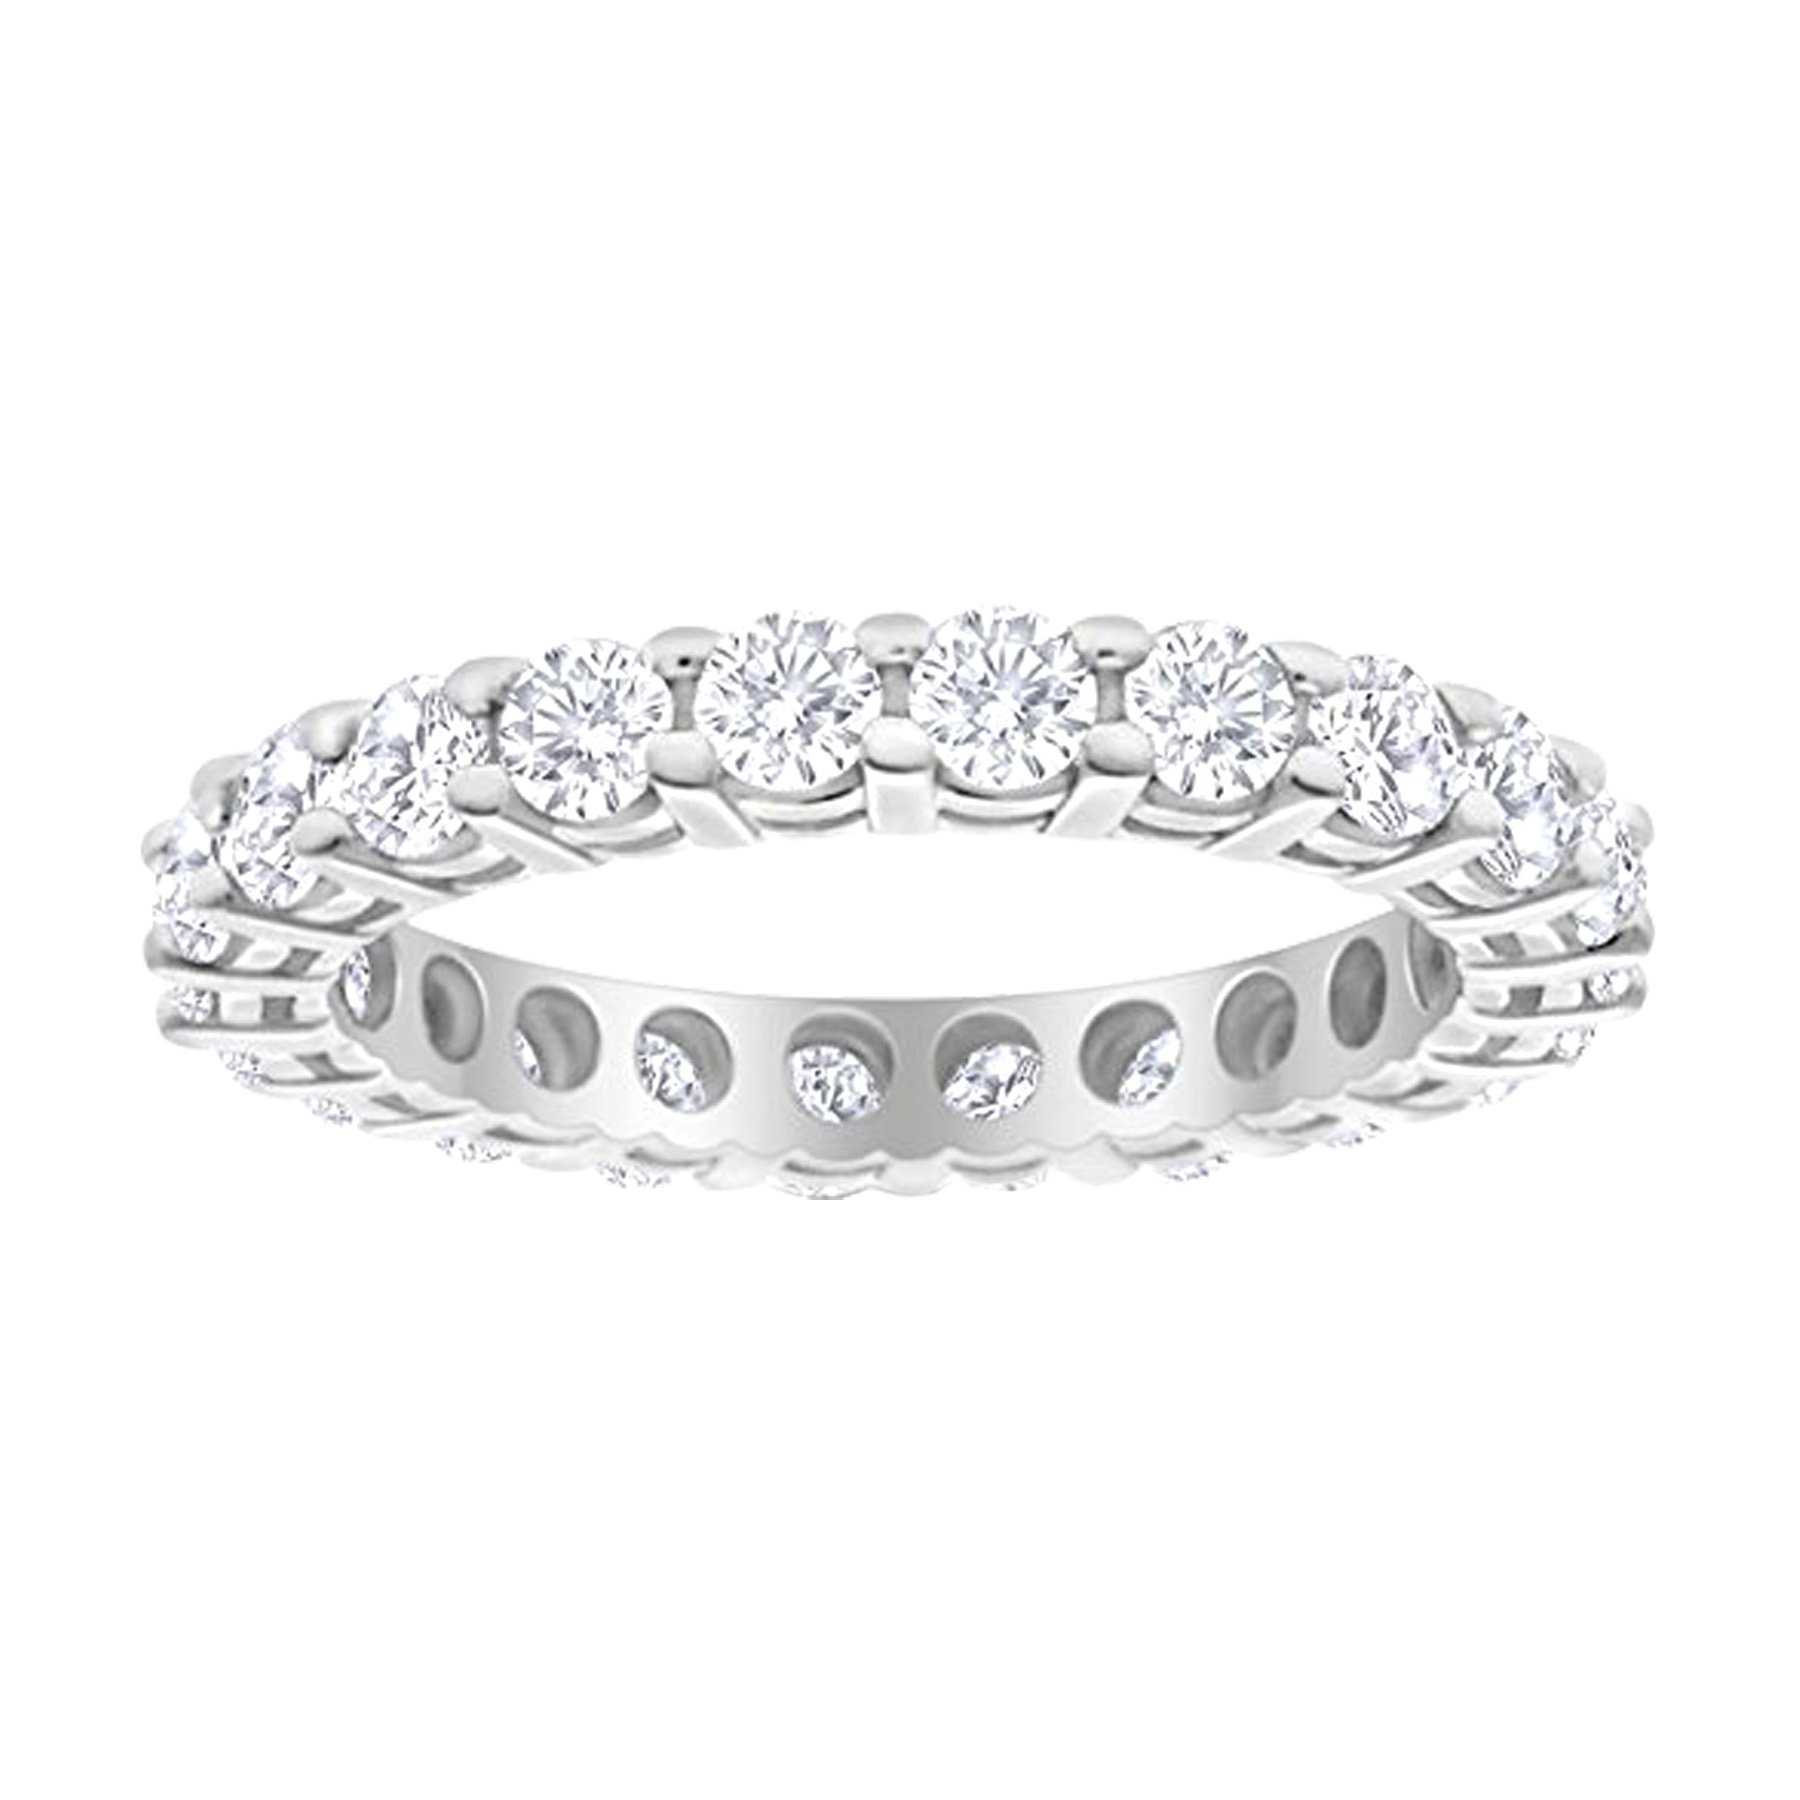 1 Carat (ctw) 14K White Gold Round Diamond Ladies Eternity Wedding Anniversary Stackable Ring Band Luxury Collection (D-E Color VS1-VS2 Clarity)